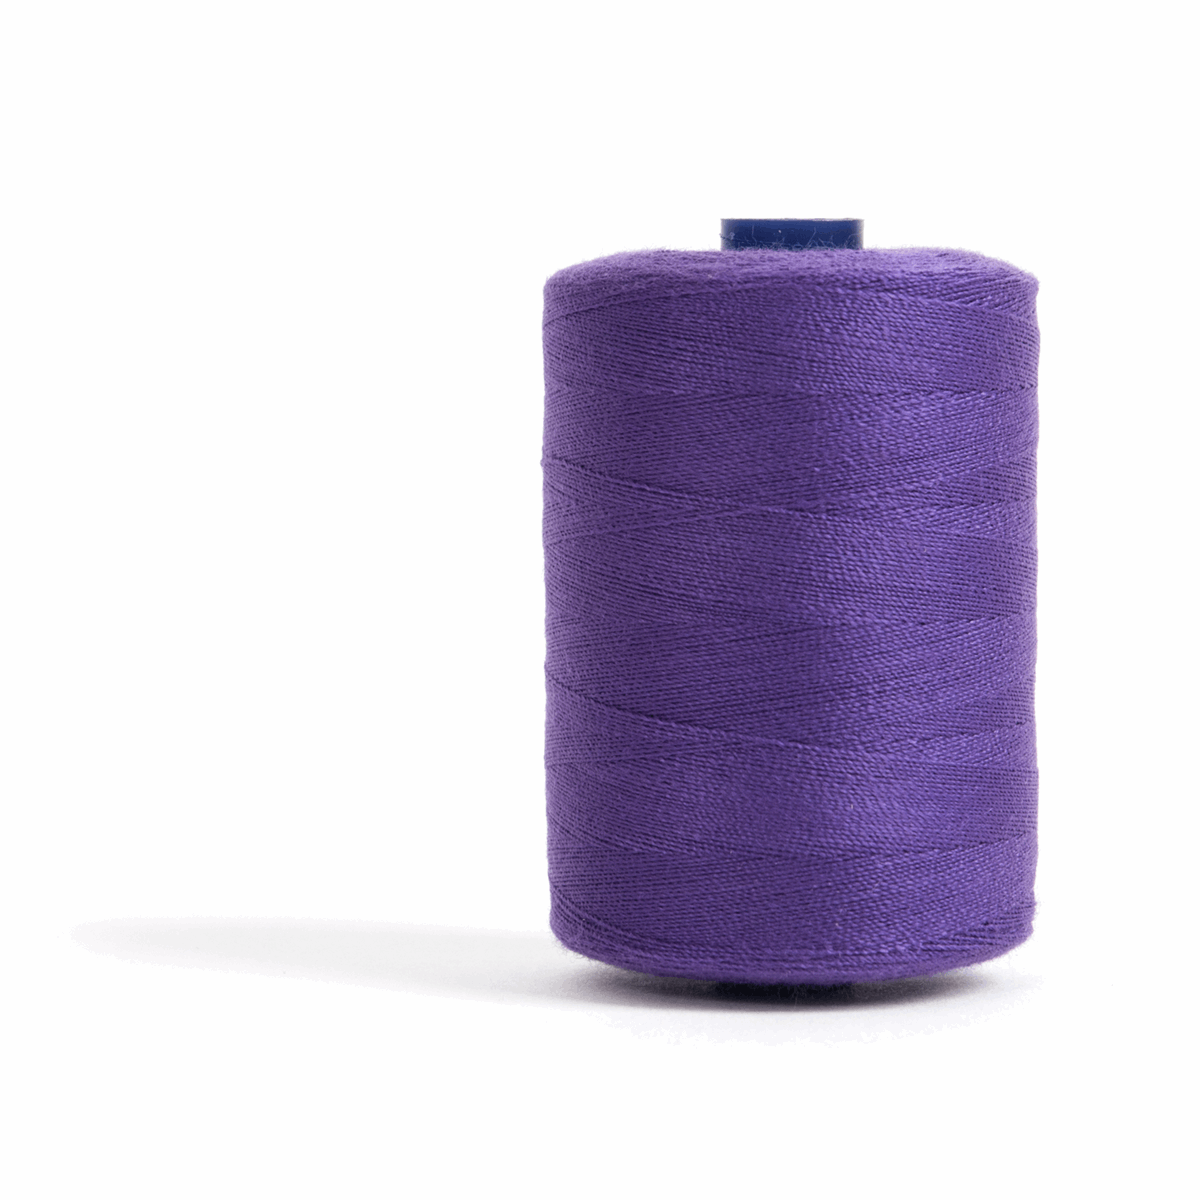 Thread 1000m Extra Large - Purple - for Sewing and Overlocking